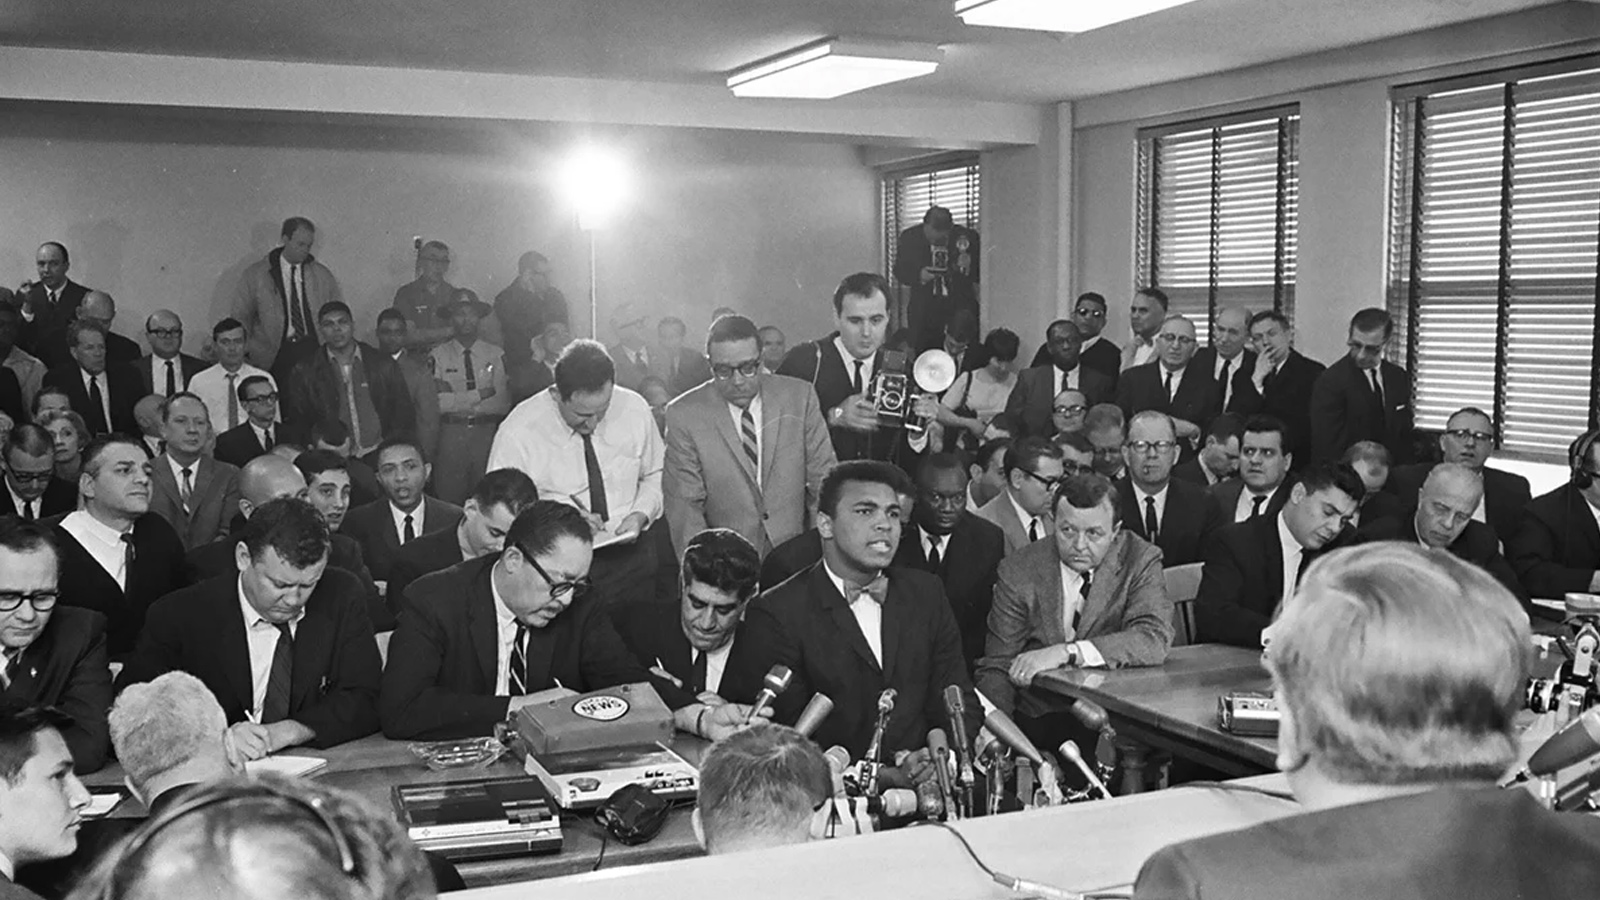 Muhammad Ali in a hearing with the Illinois Athletic Commission on February 25, 1966 over whether to cancel his fight against Ernie Terrell for Ali's refusal to serve in the military.